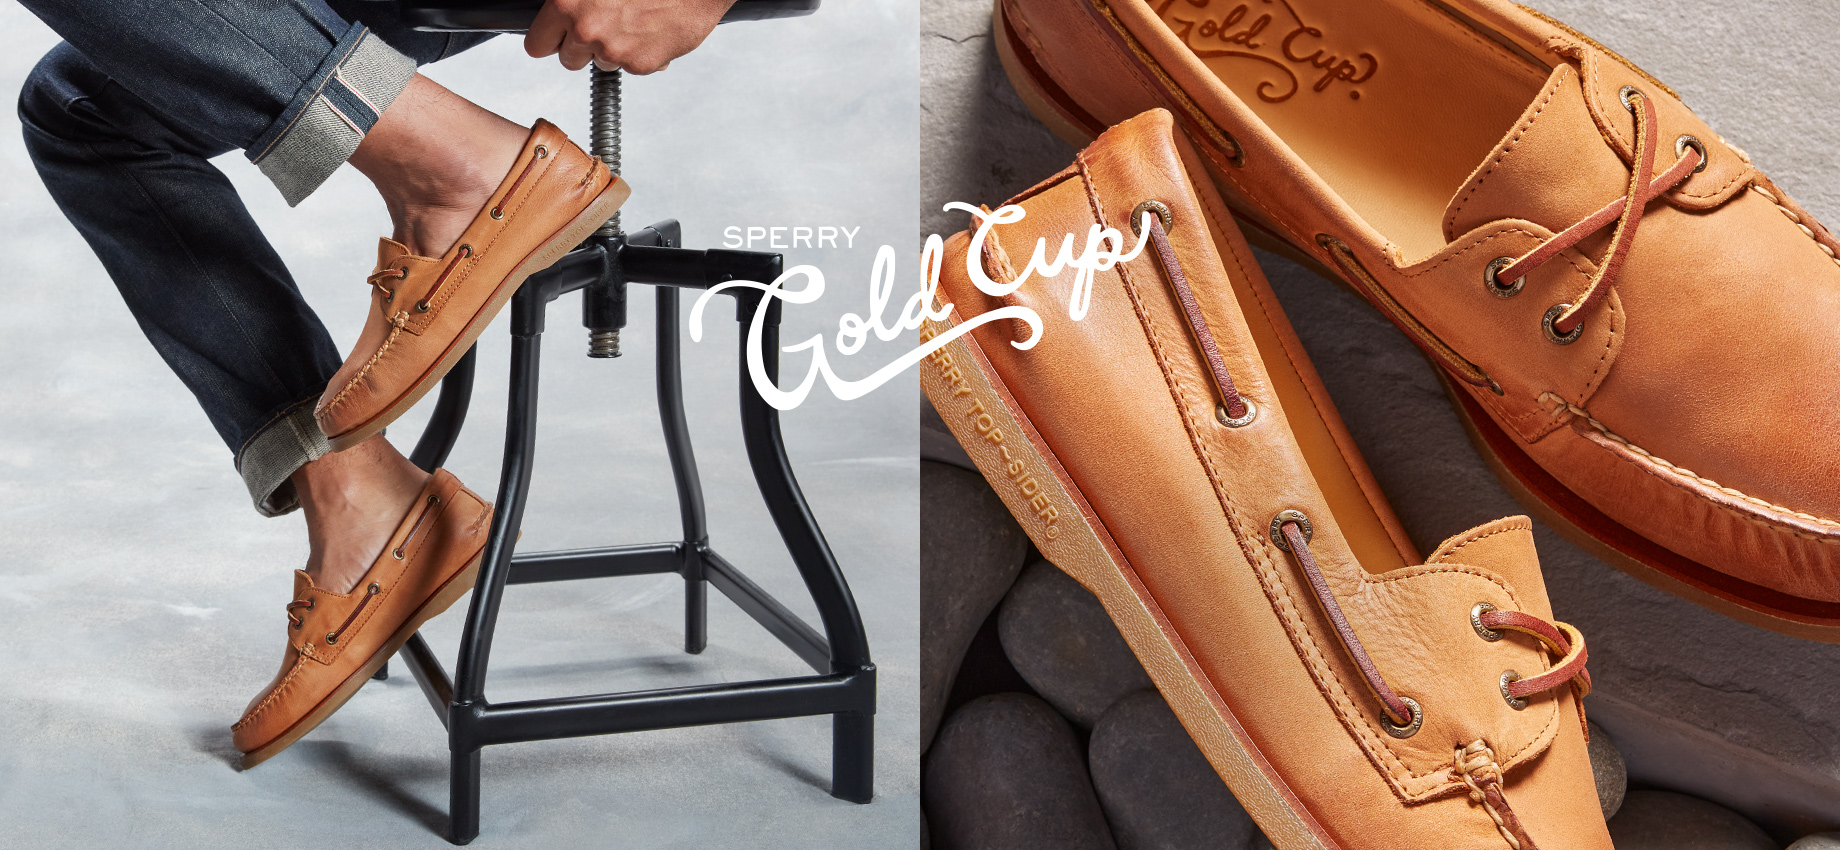 Person sitting on a metal stool with boat shoes on next to an image of a closeup of a pair of boat shoes